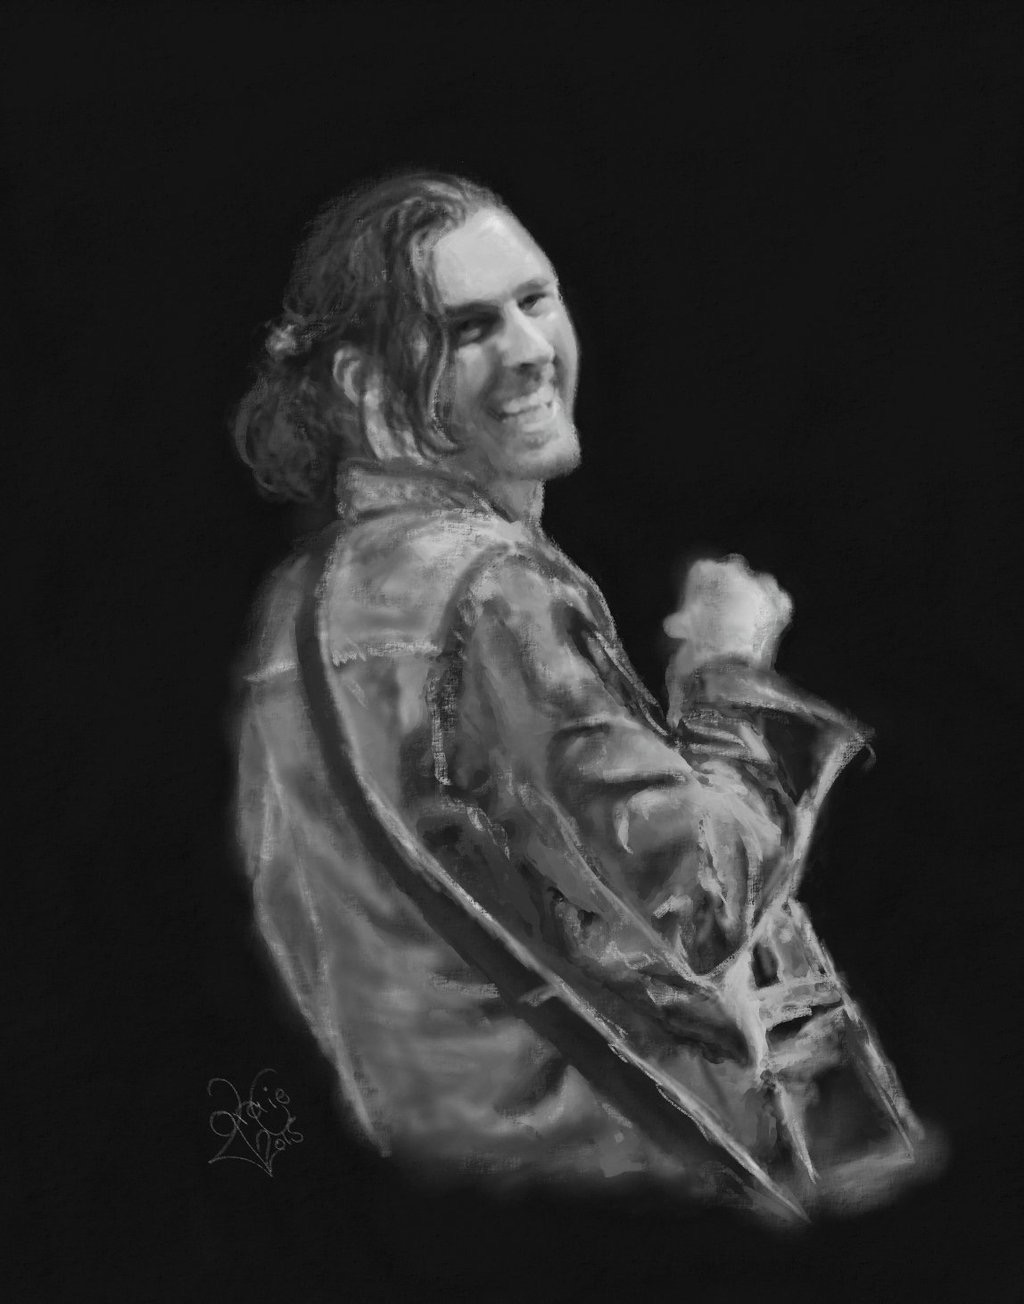 Hozier Art by Gracie @Jupiteralmalthea | HOZIER FAN ART